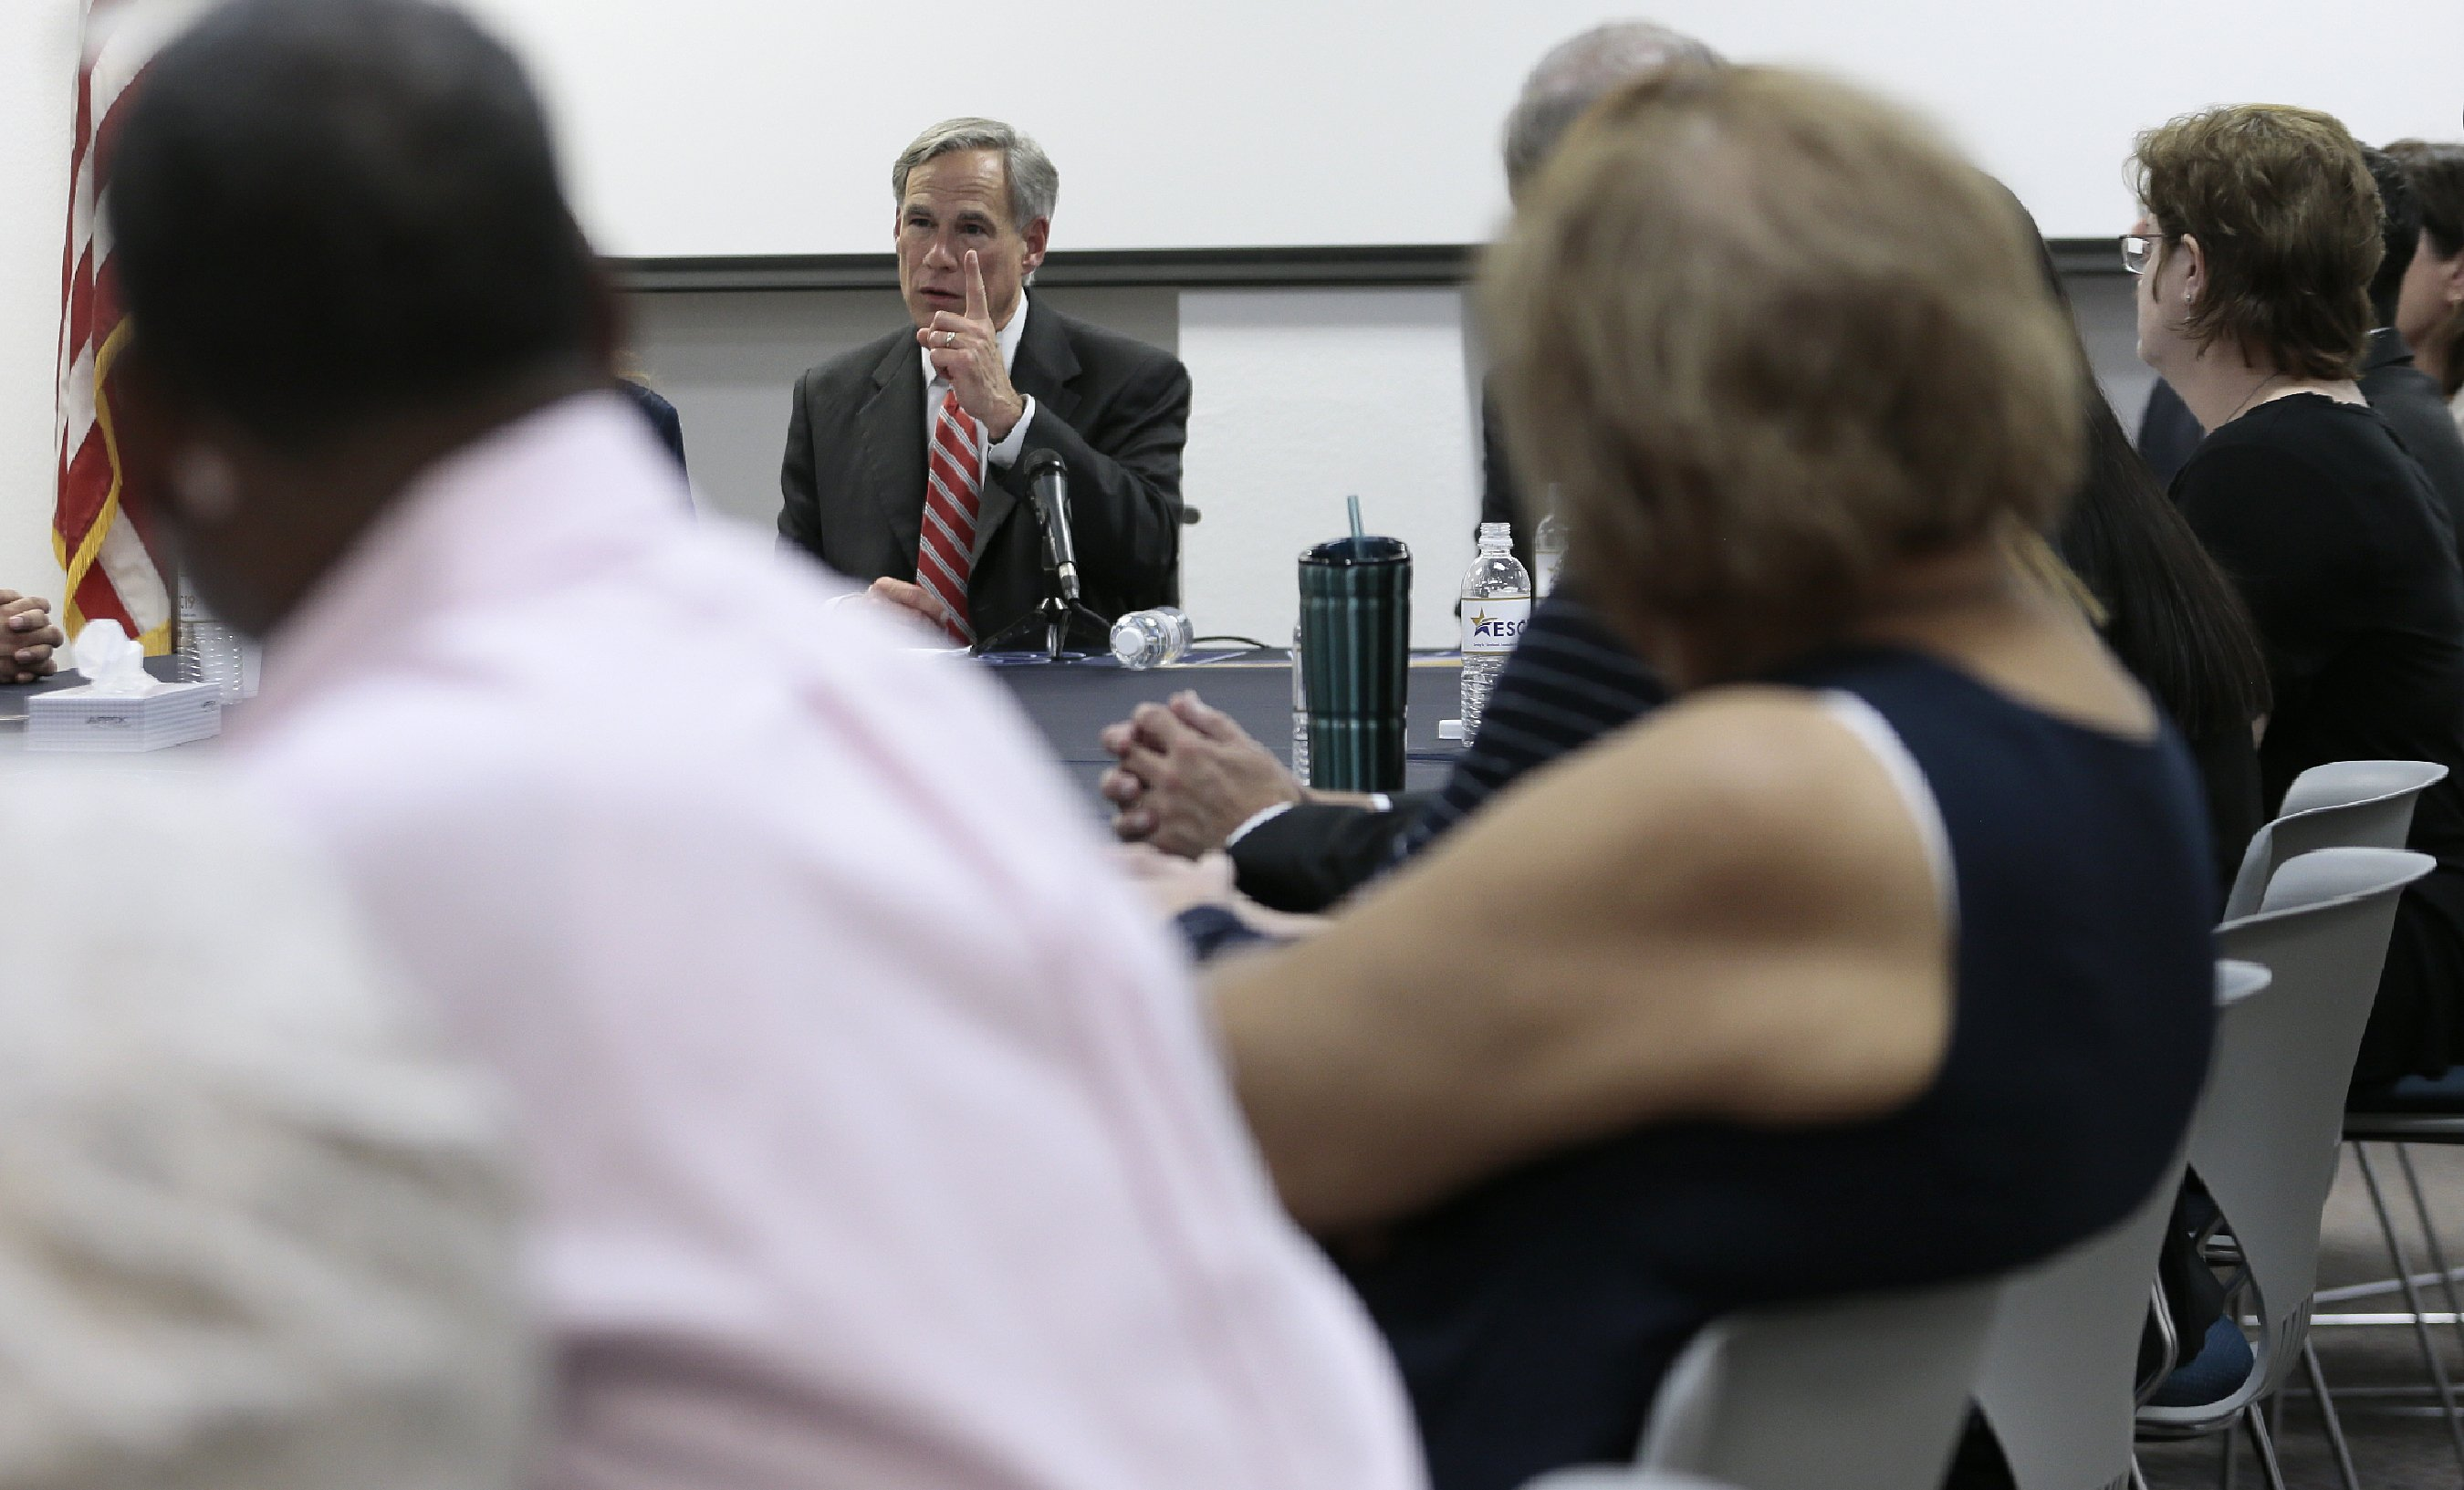 Texas governor says 'mistakes' made in immigrant rhetoric